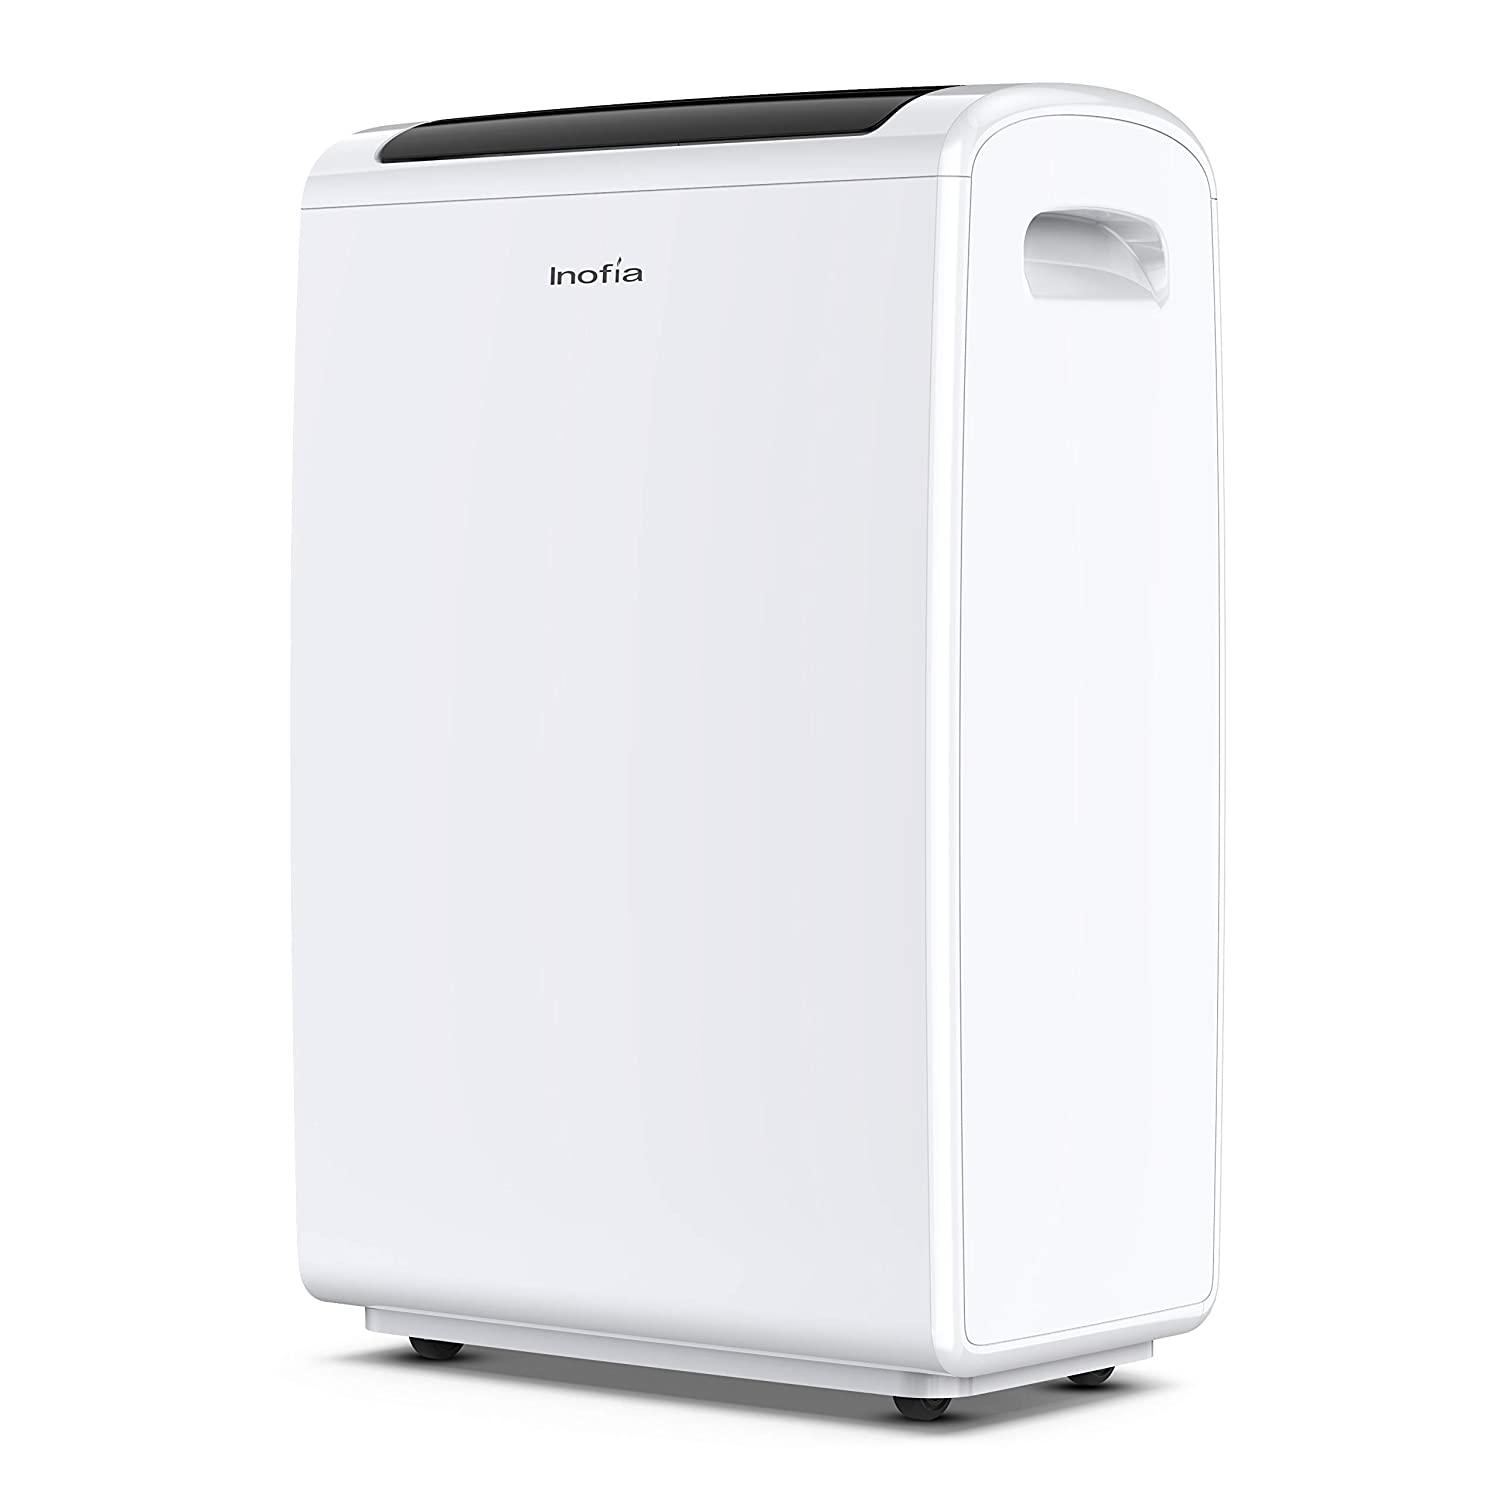 Inofia 70 Pint Dehumidifiers for Home/Basements/Bathroom/Large Room up to 4,000 Sq Ft, Portable Dehumidifier with Drain Hose/Laundry Mode/Caster Wheels/7.4 Pints(3.5 litres) Water Reservoir